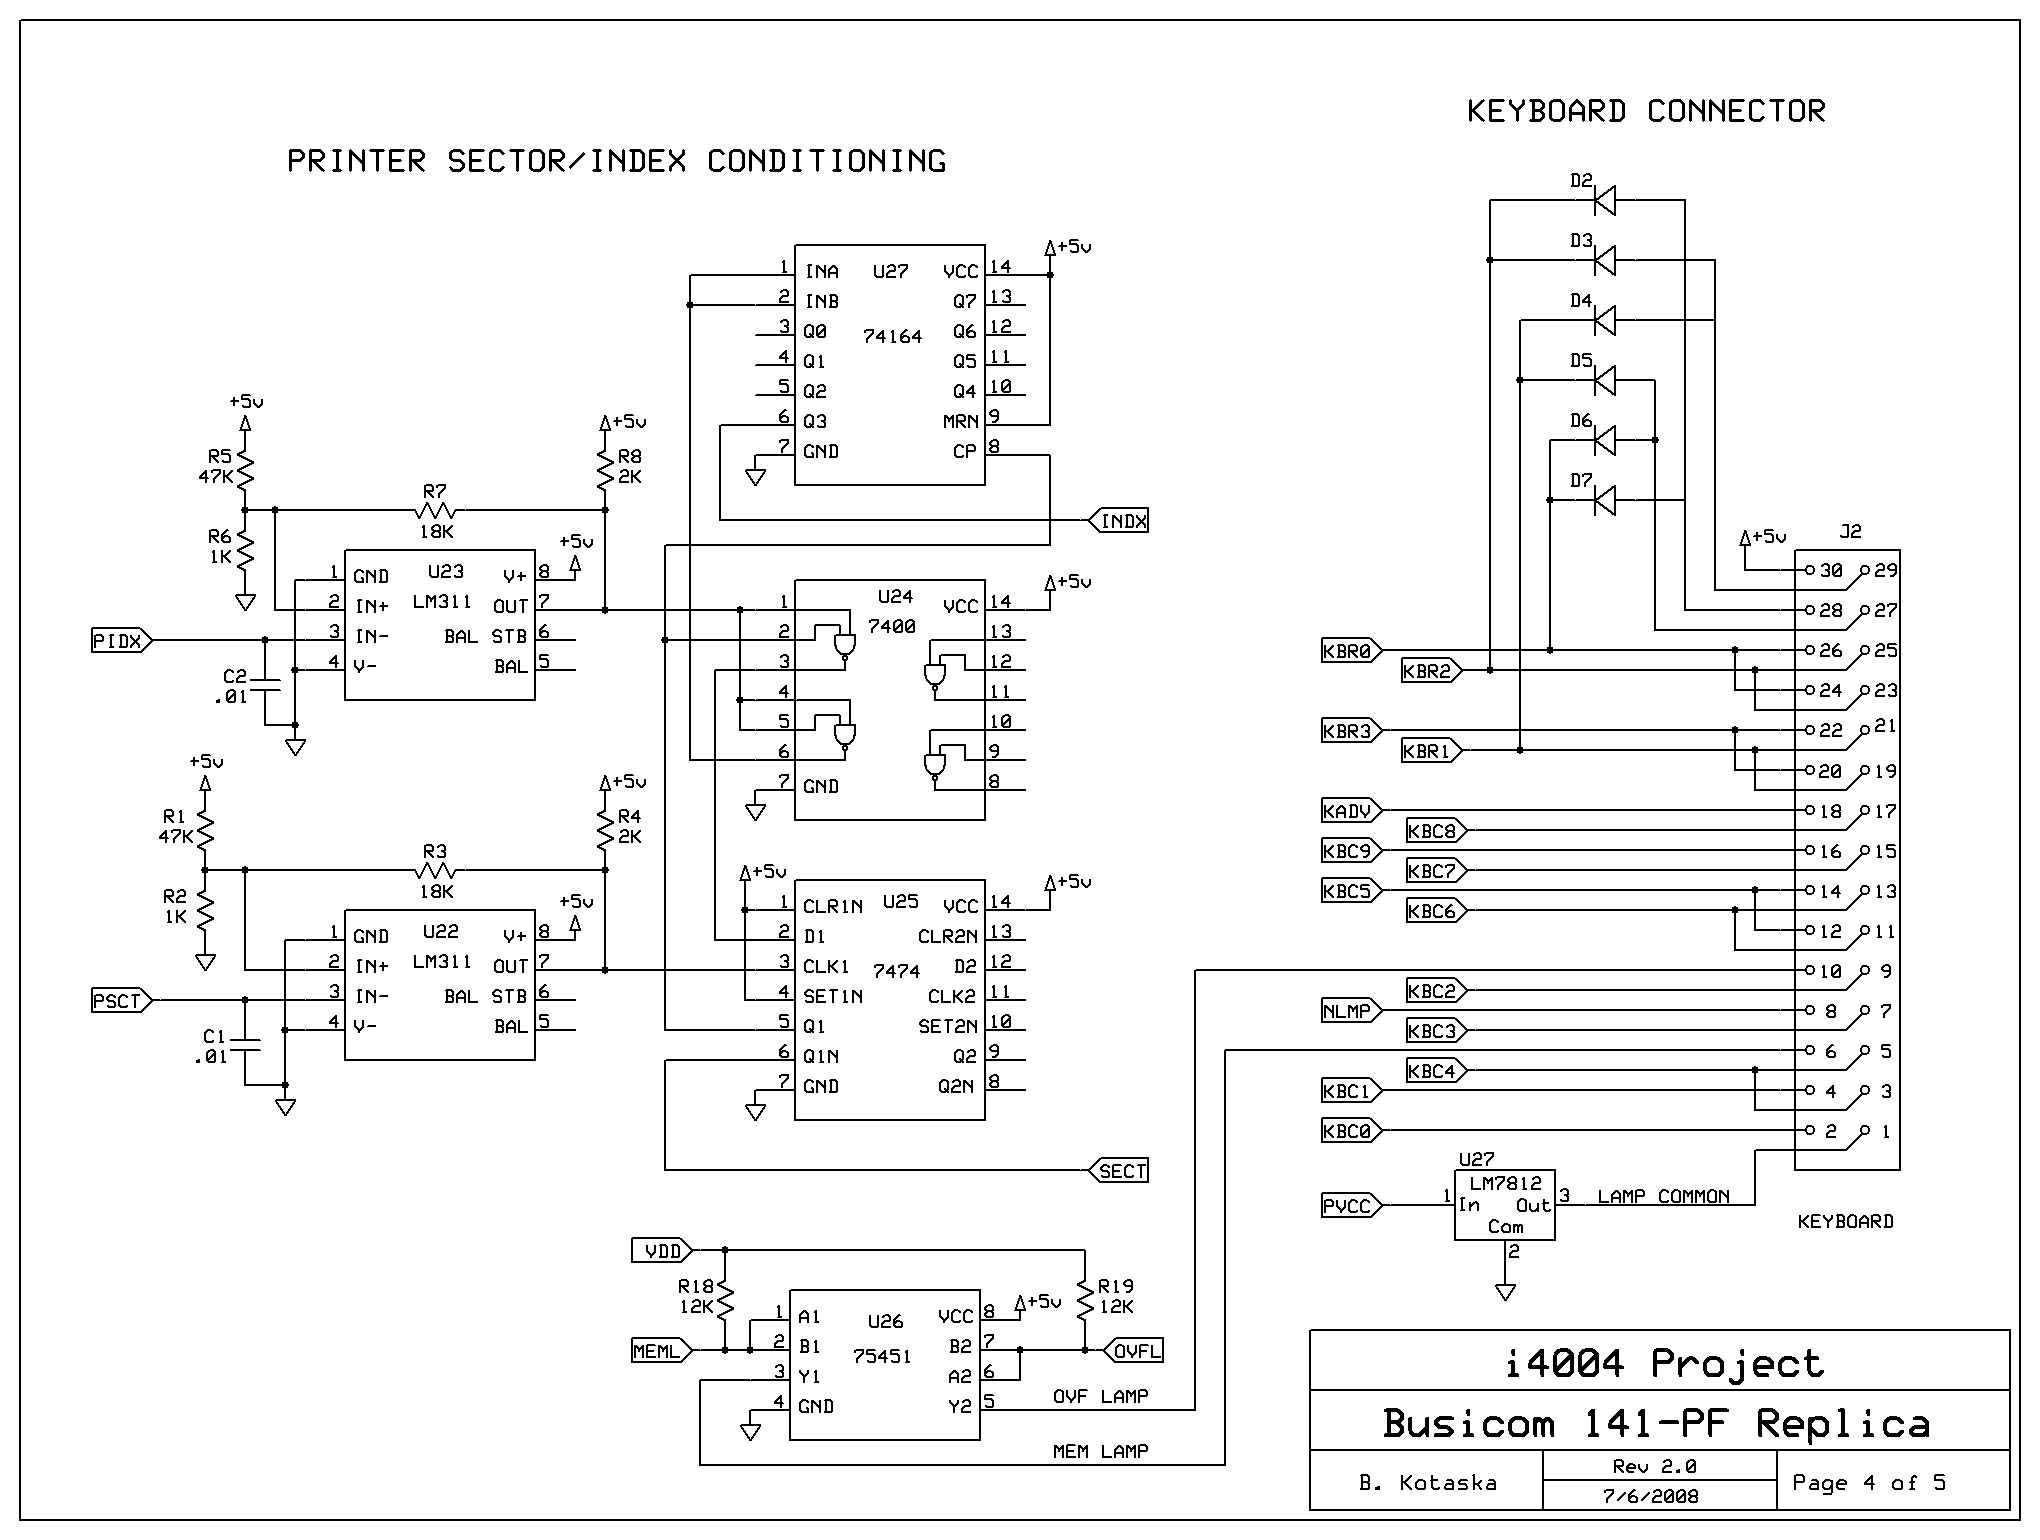 Busicom 141 Pf Replica Schematics Model 102 Printer Emulator